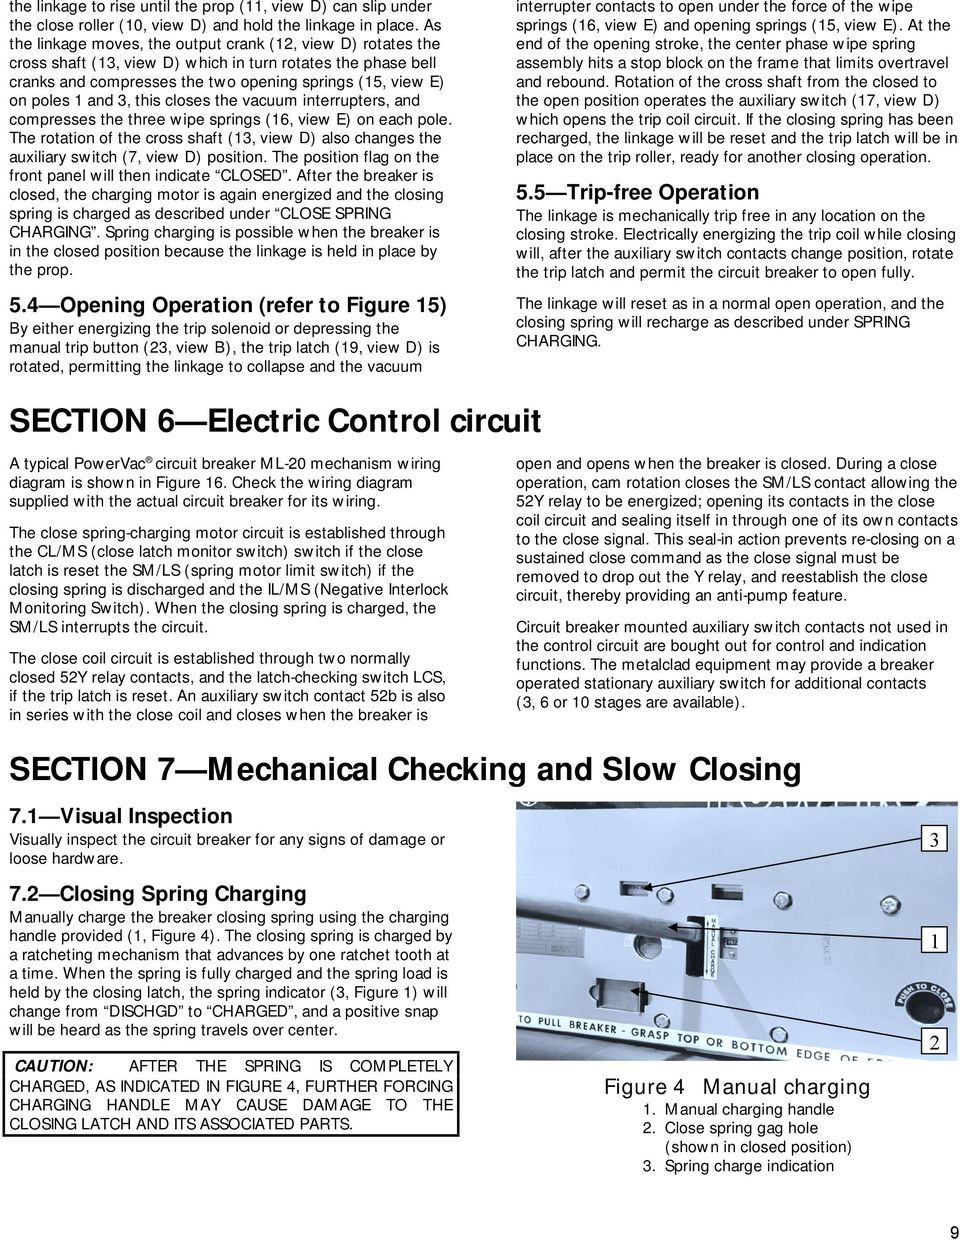 Deh Instructions Powervac Vacuum Circuit Breaker With Ml 20 Figure 2 Panel A Switch 3 This Closes The Interrupters And Compresses Three Wipe Springs 16